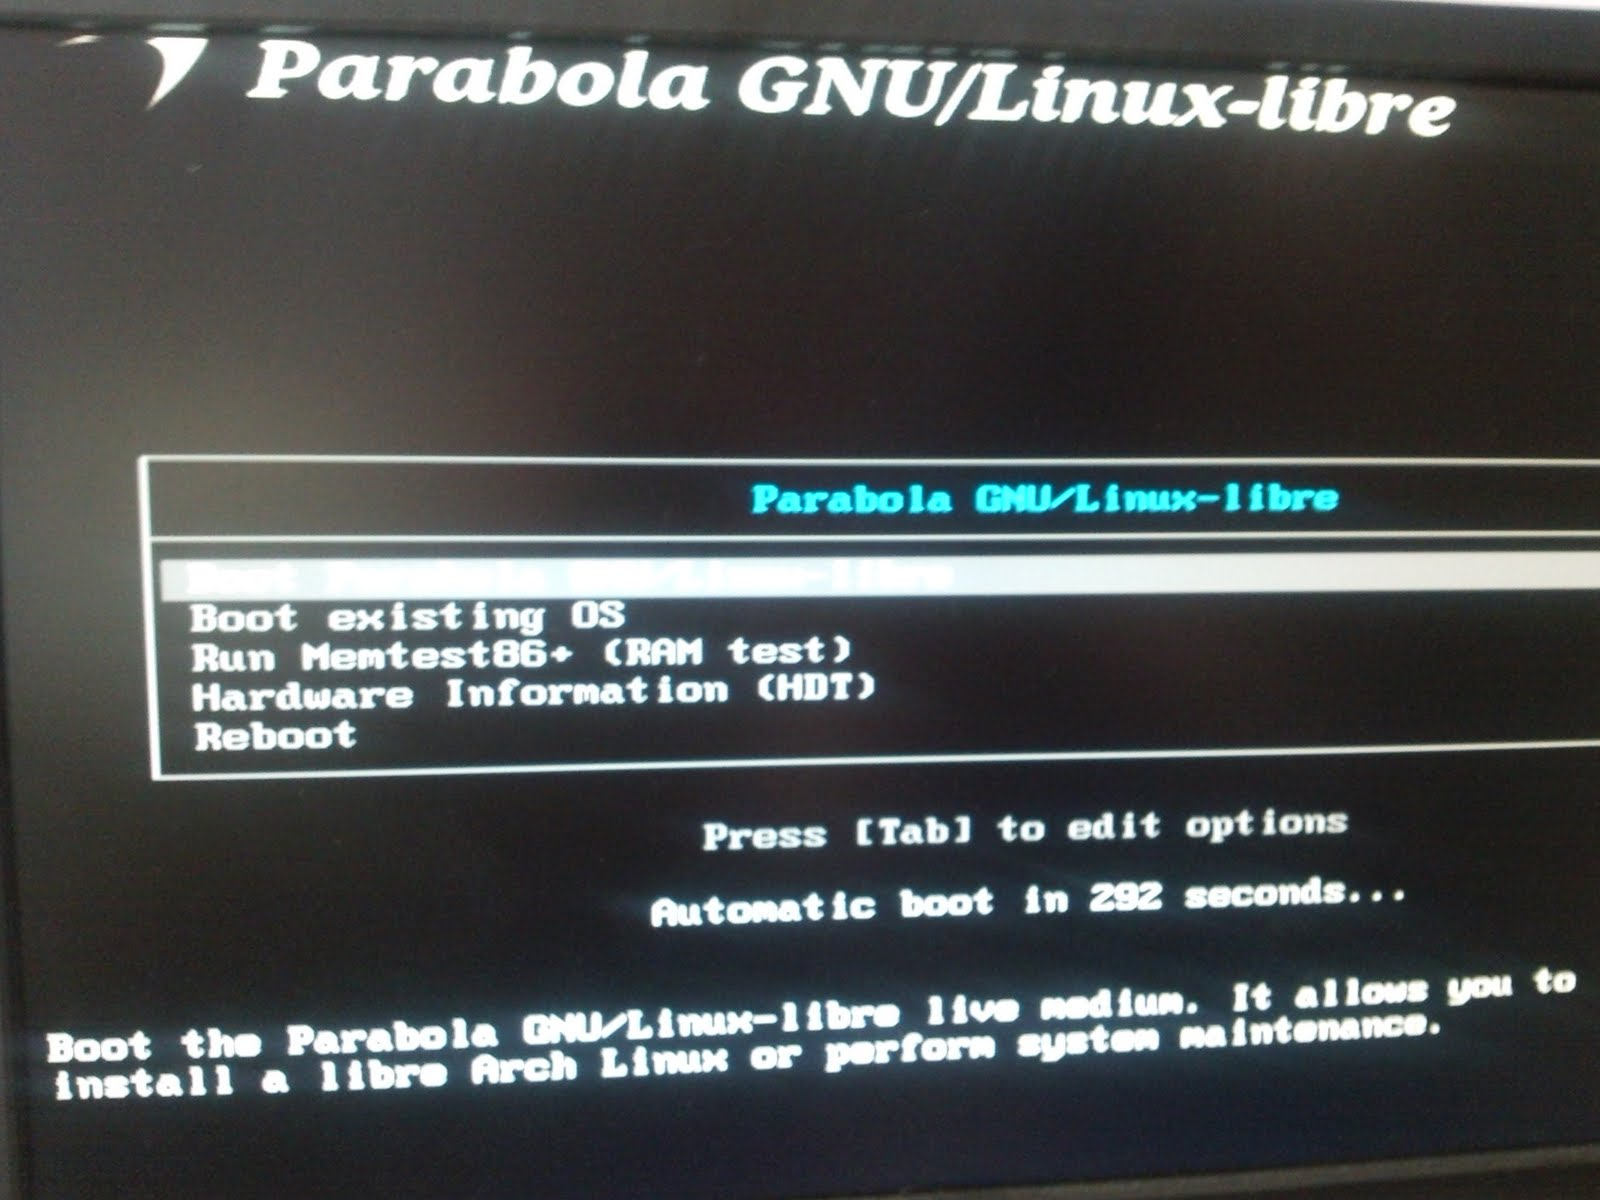 Boot-screeof GNU Parabola Linux